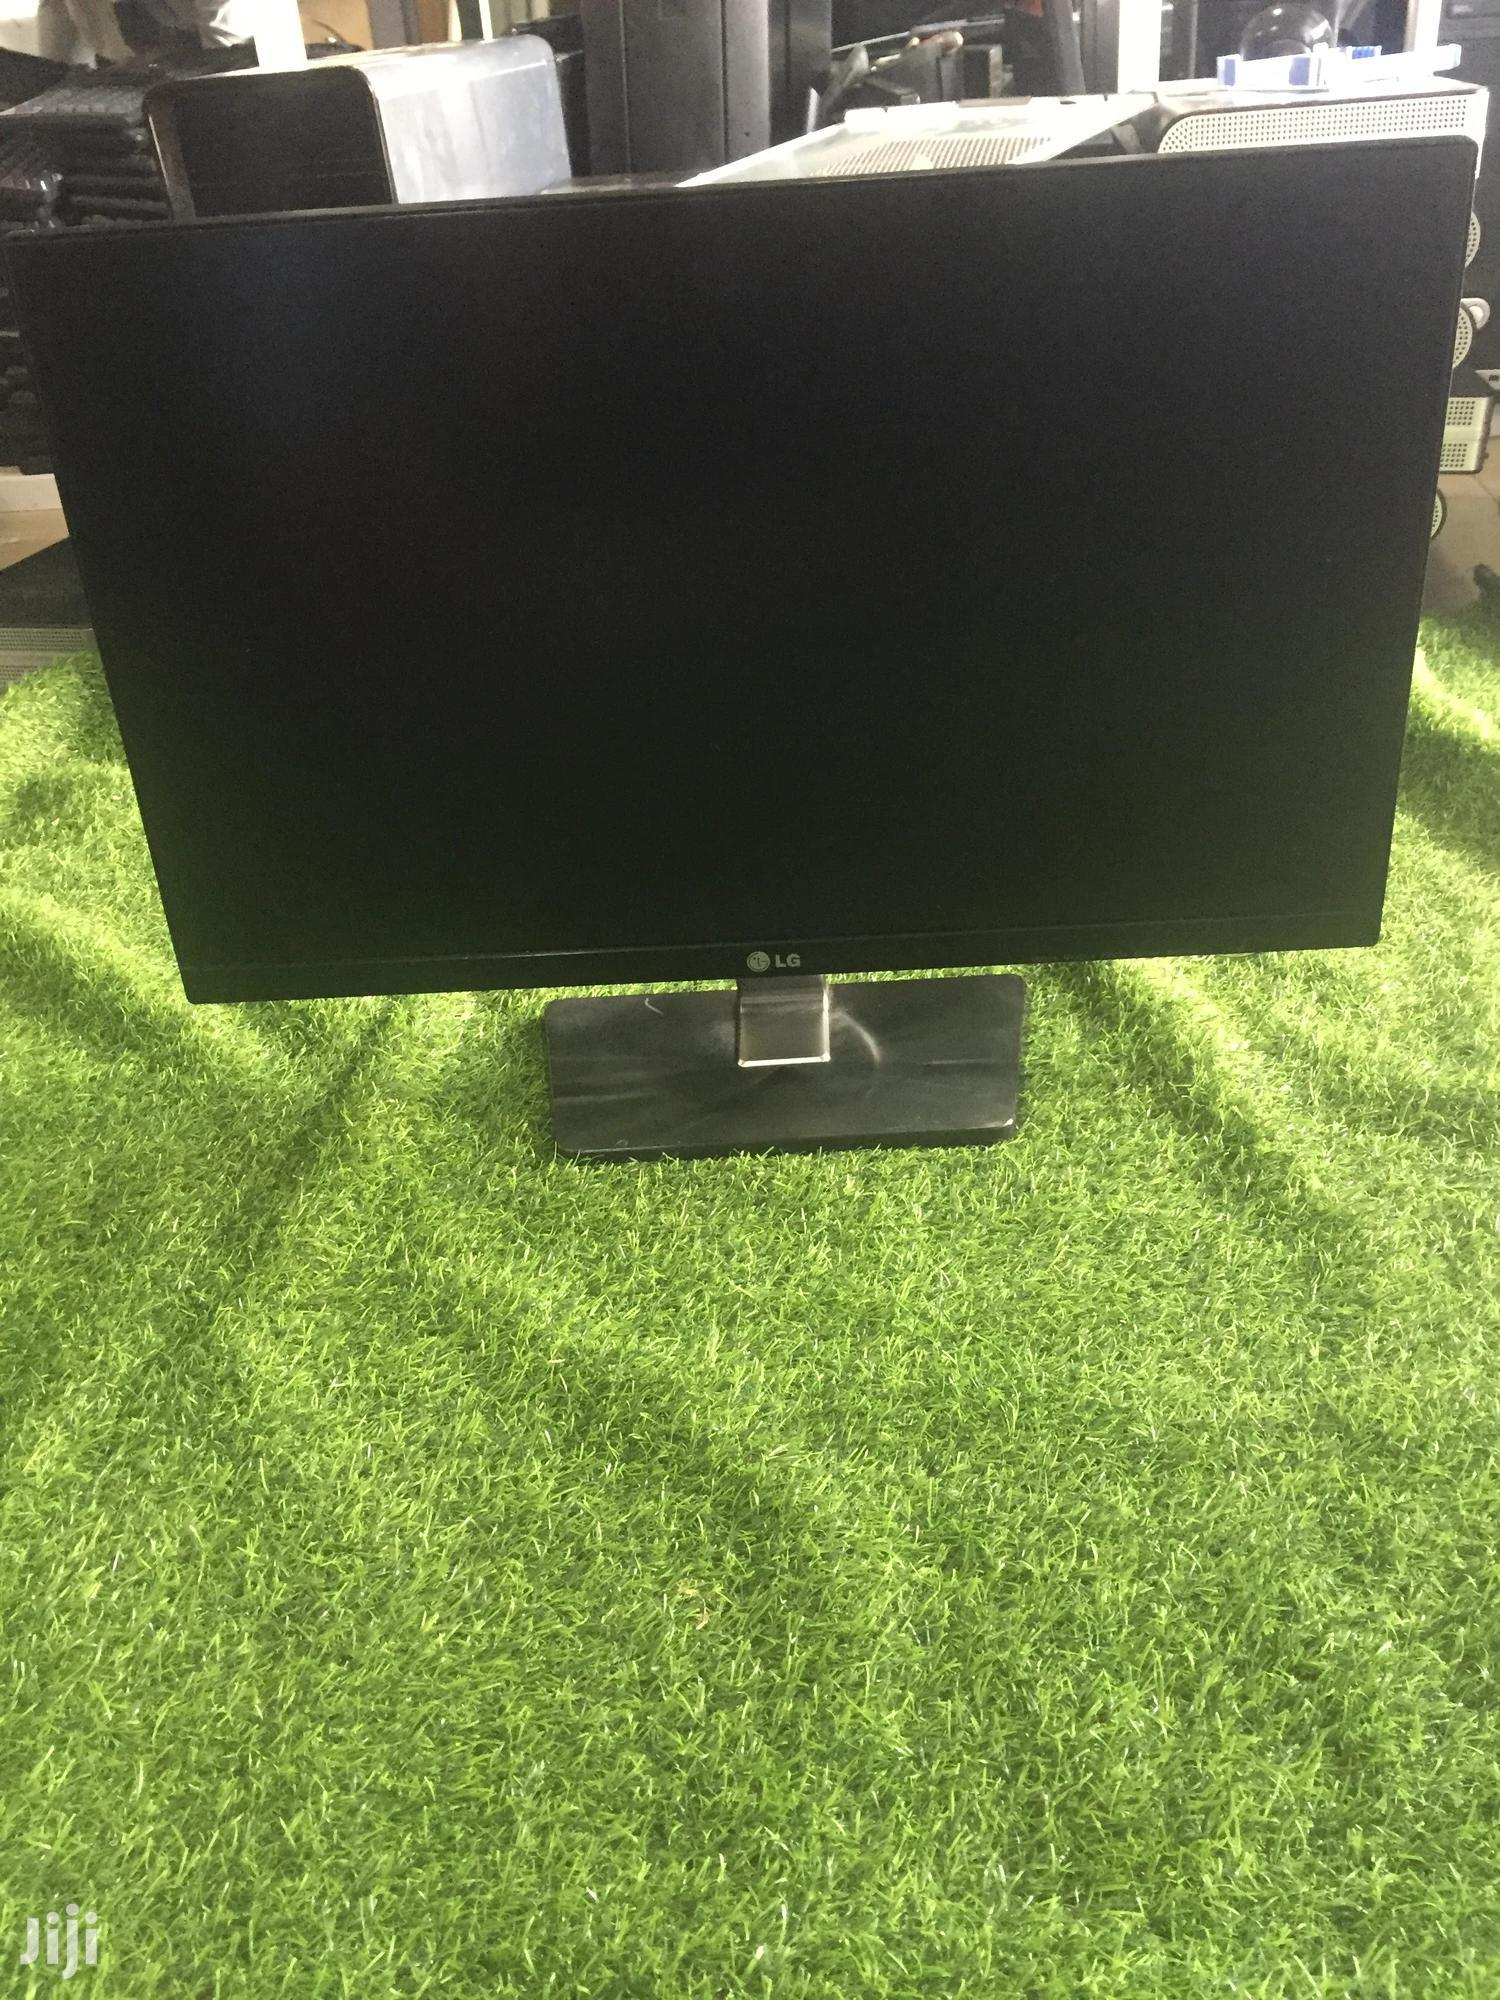 LG 27 Inches IPS277LY Monitor